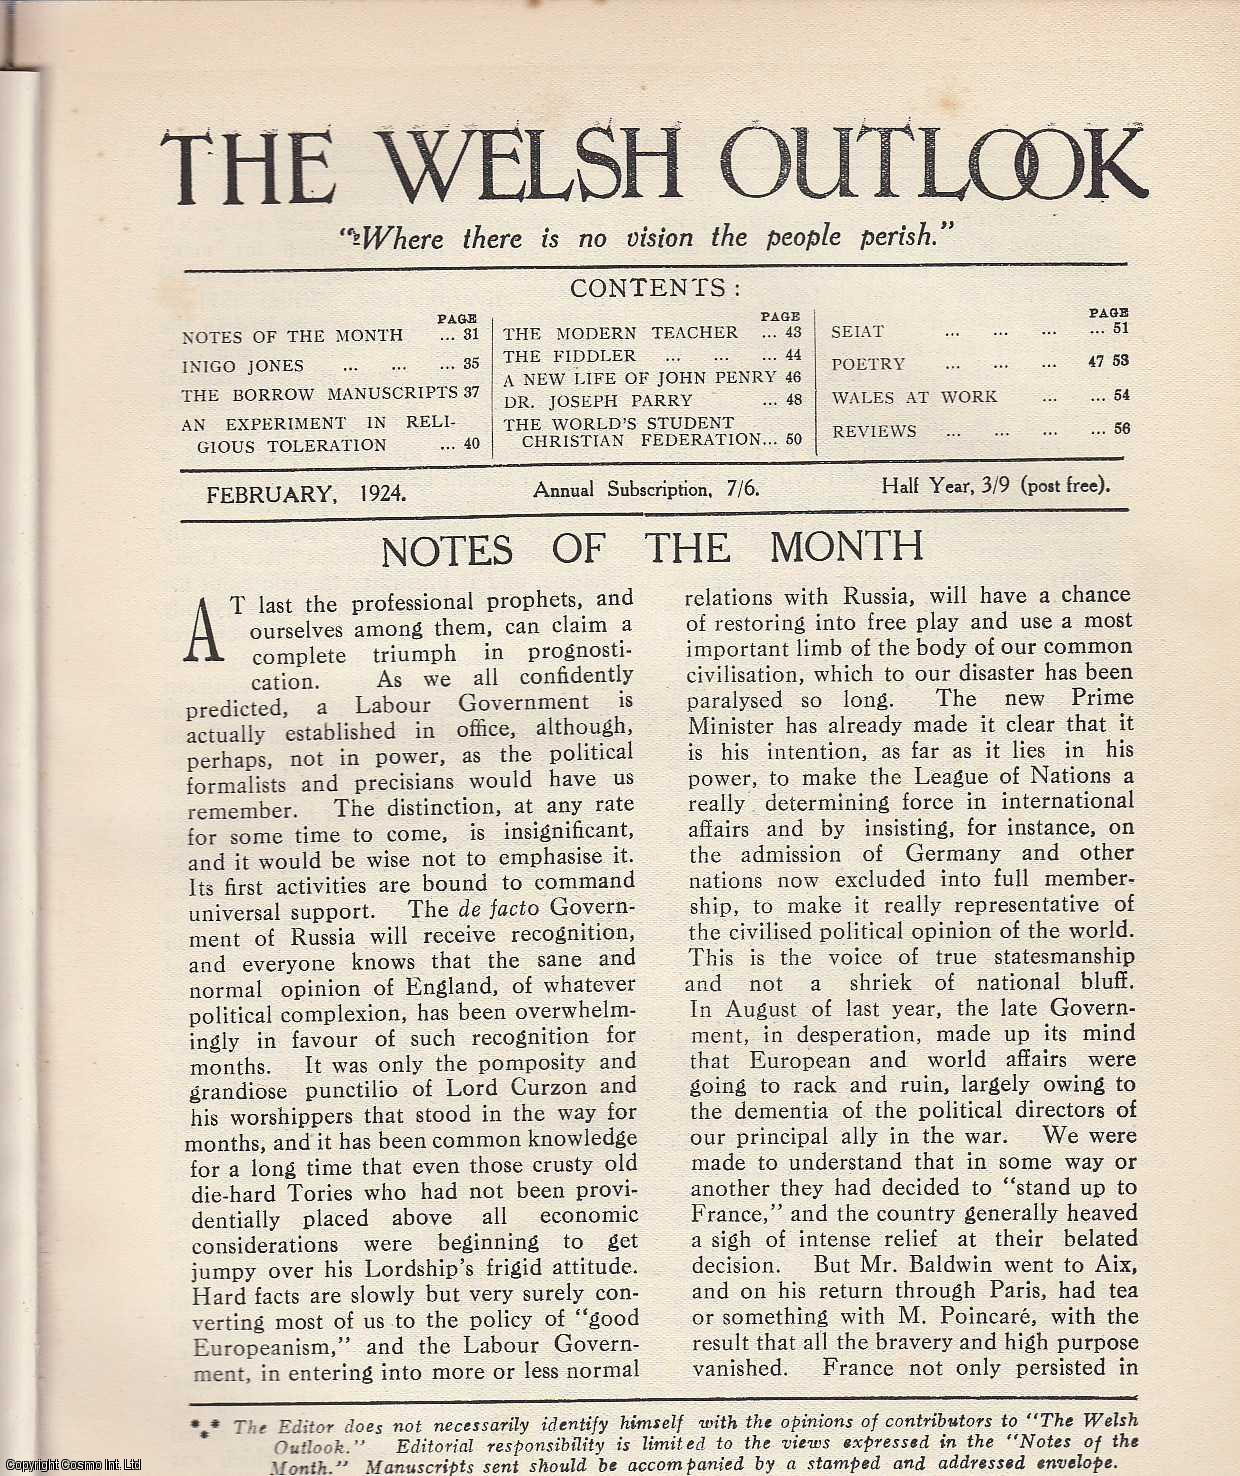 THOMAS JONES (EDITOR) - The Welsh Outlook. A Monthly Journal of National Social Progress. February, 1924. Contains; Inigo Jones: Master of Architecture and Stage-Craft by Isaac J. Williams; The Borrow Manuscripts by Professor H.Wright; An Experiment in Religious Toleration by F. Morgan; The Modern Teacher by E.R. Thomas; The Fiddler by Ellen A.C. Lloyd; A New Life of John Penry by T.H. Lewis; Dr. Joseph Parry by D. Griffiths; The World's Student Christian Federation by Elined Prys; Seiat by Mary J. James; Poetry by Elined Prys; Wales at Work - A Diary of things Said and Done. An original article from the Welsh Outlook magazine, 1924.